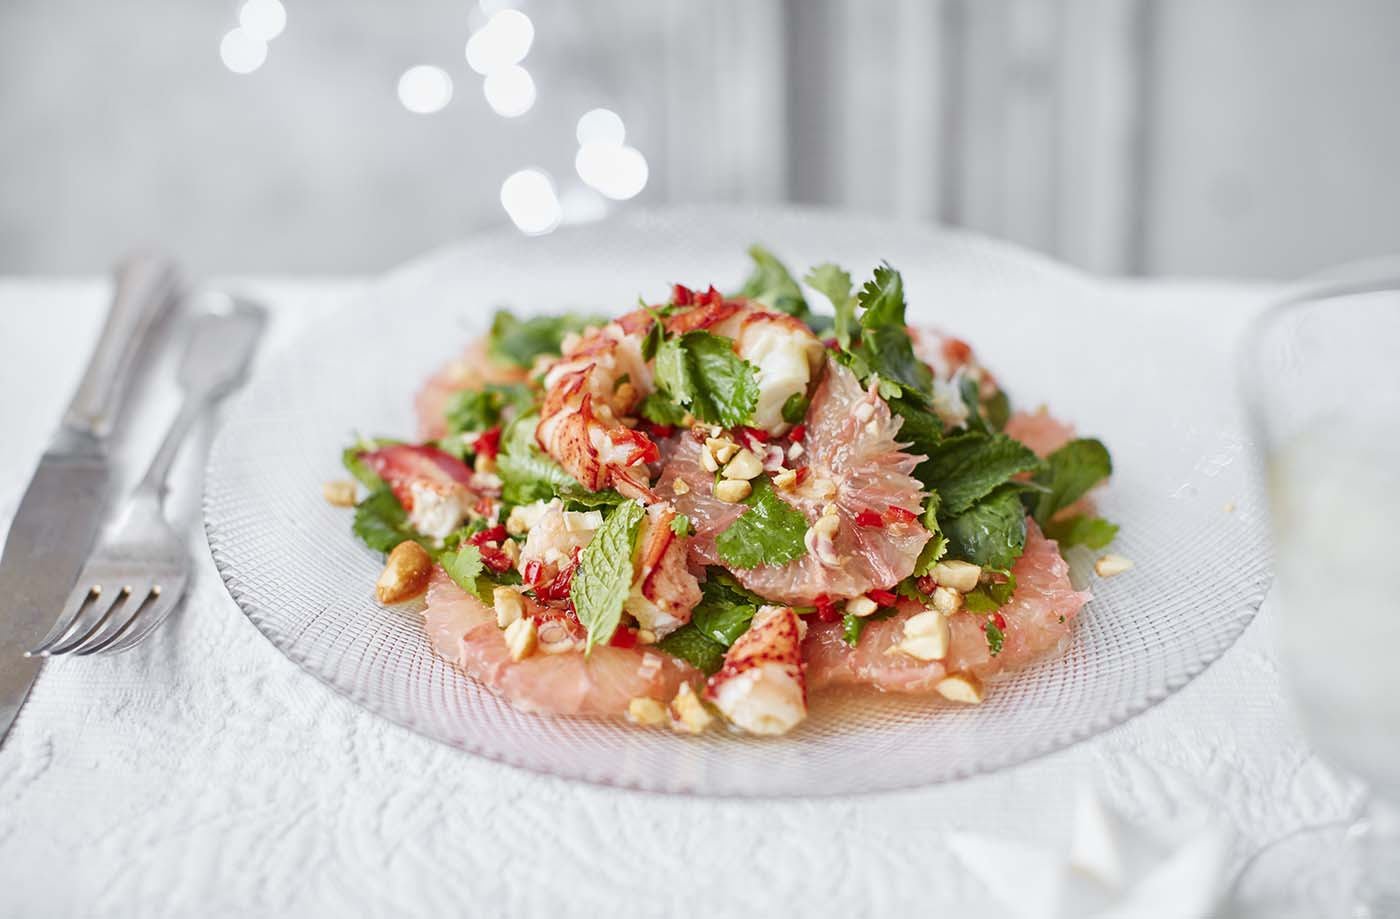 Vietnamese lobster and grapefruit salad with a ginger and lemongrass dressing